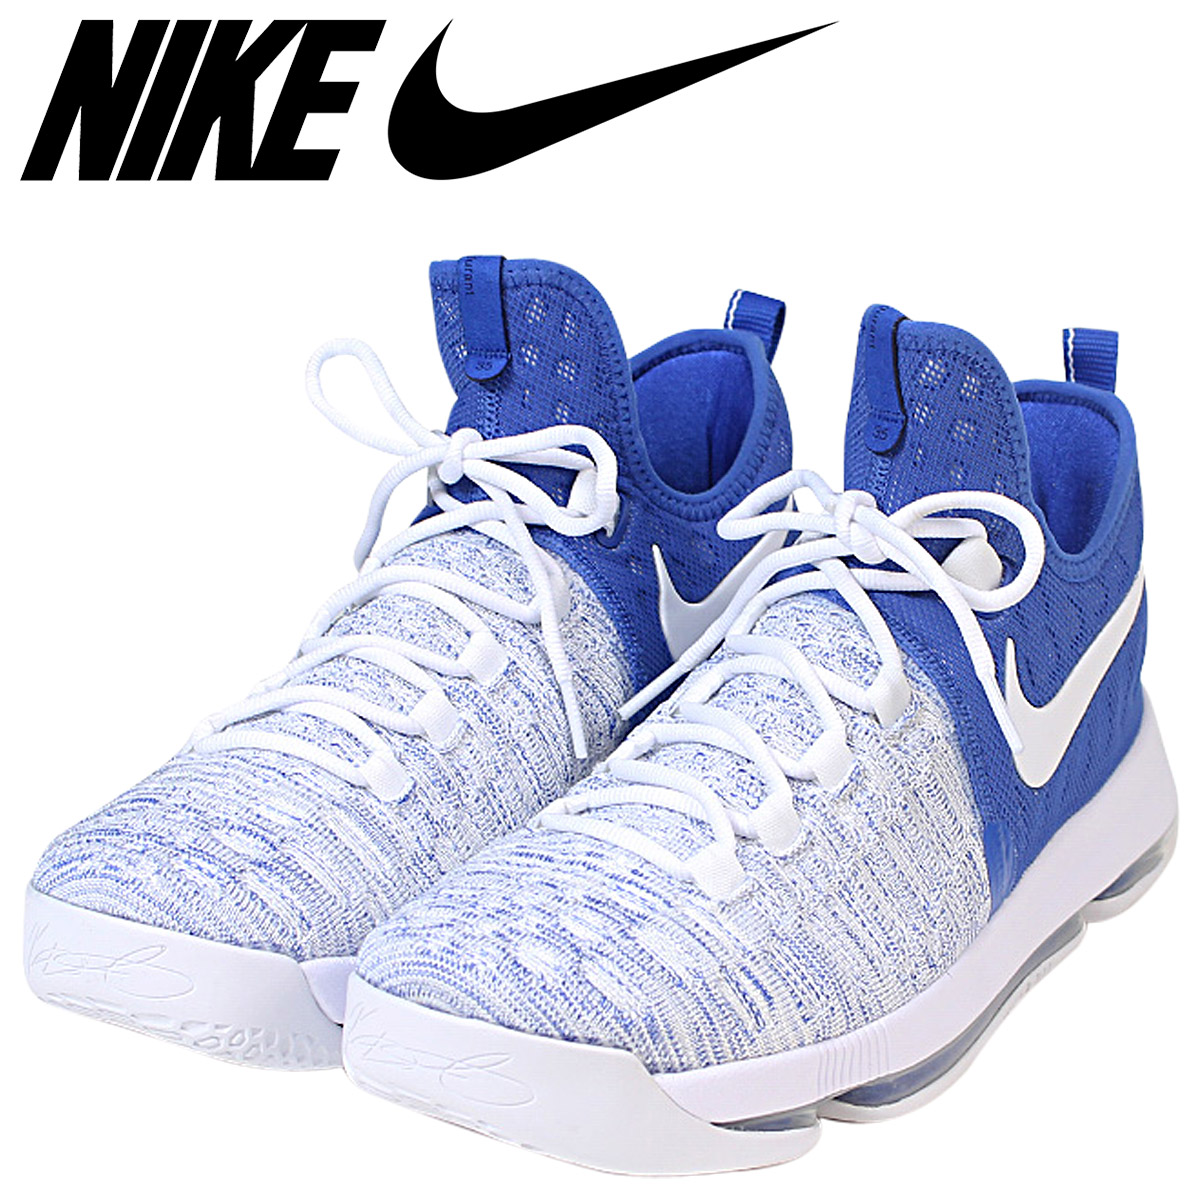 best service a4202 eda6c Nike NIKE zoom KD9 sneakers ZOOM KD 9 EP GAME ROYAL men 844,382-411 Kevin  Durant white